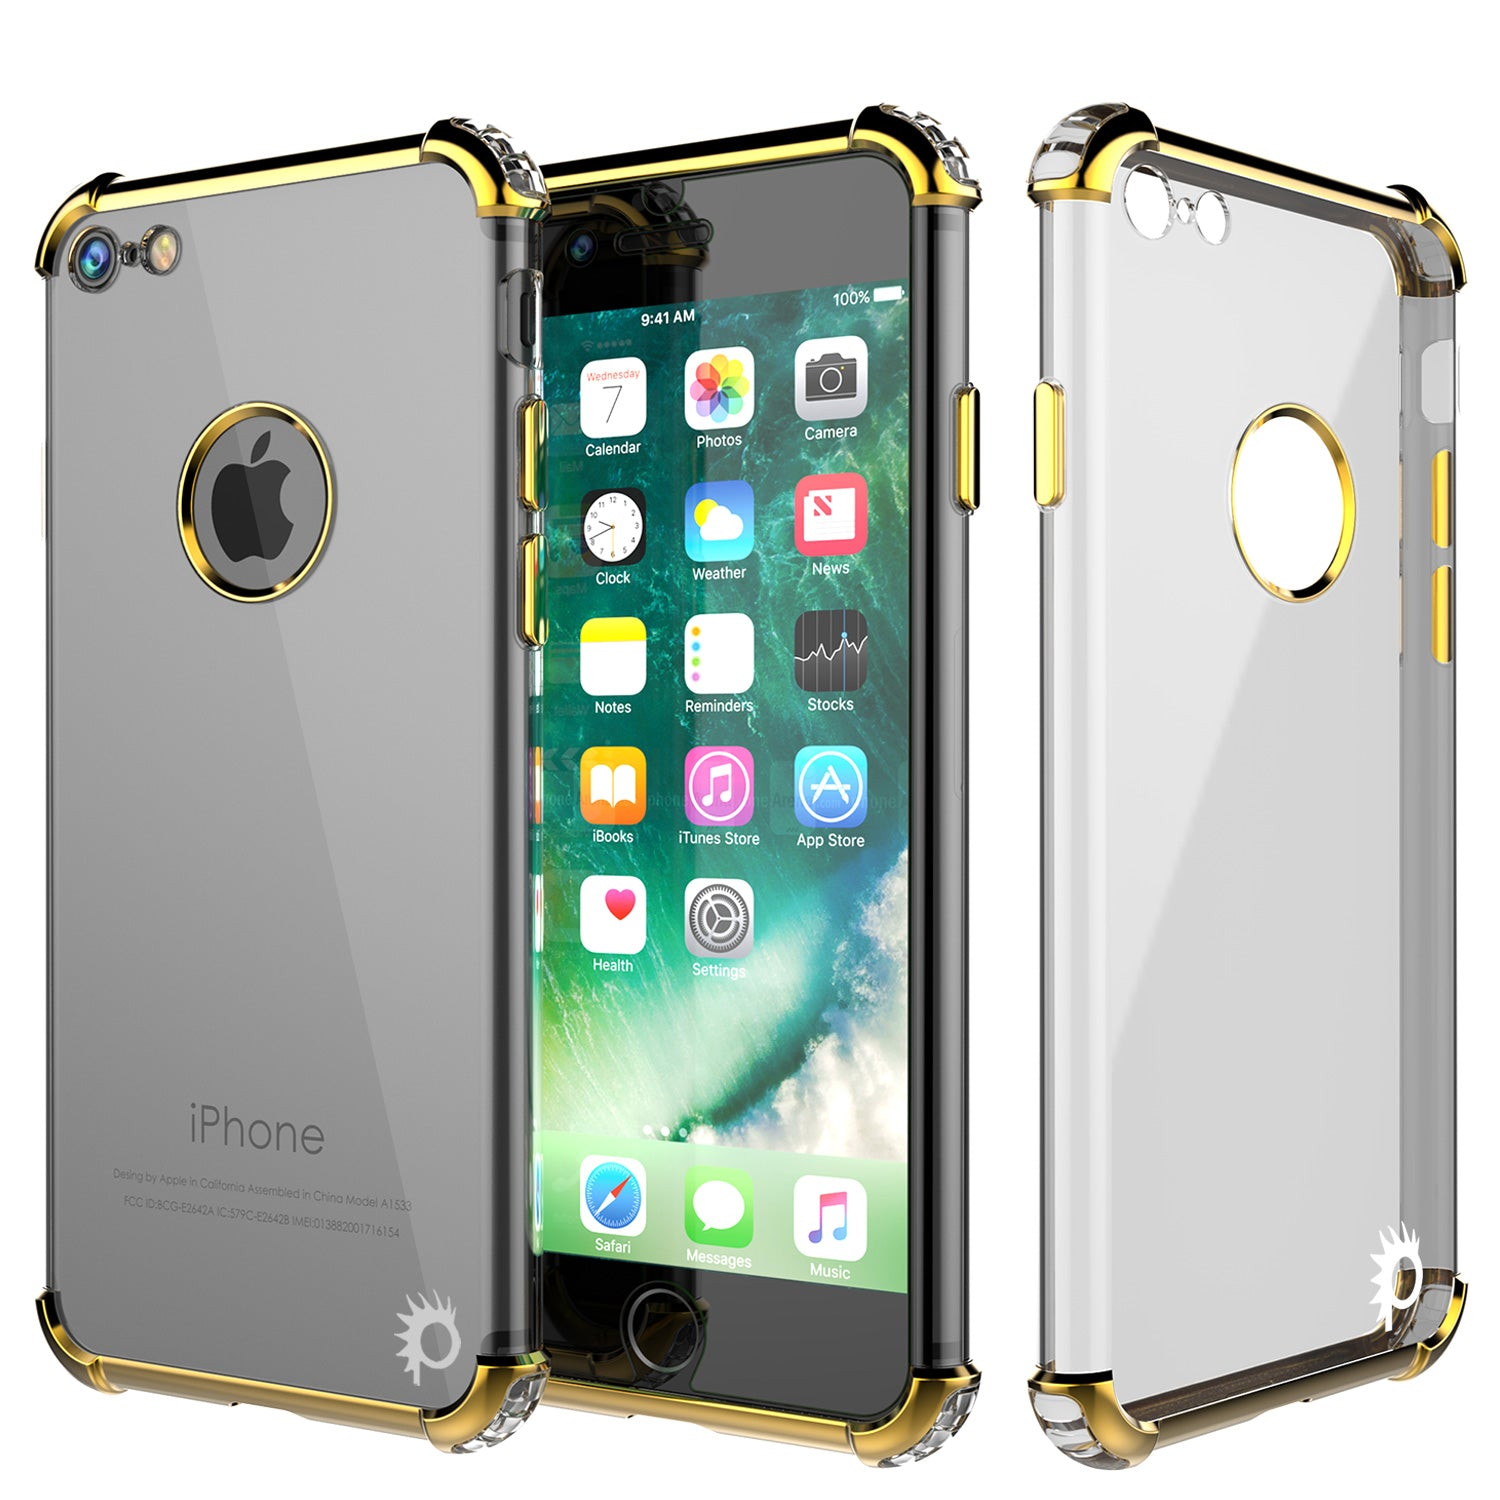 iPhone 7 Case, Punkcase [BLAZE GOLD SERIES] Protective Cover W/ PunkShield Screen Protector